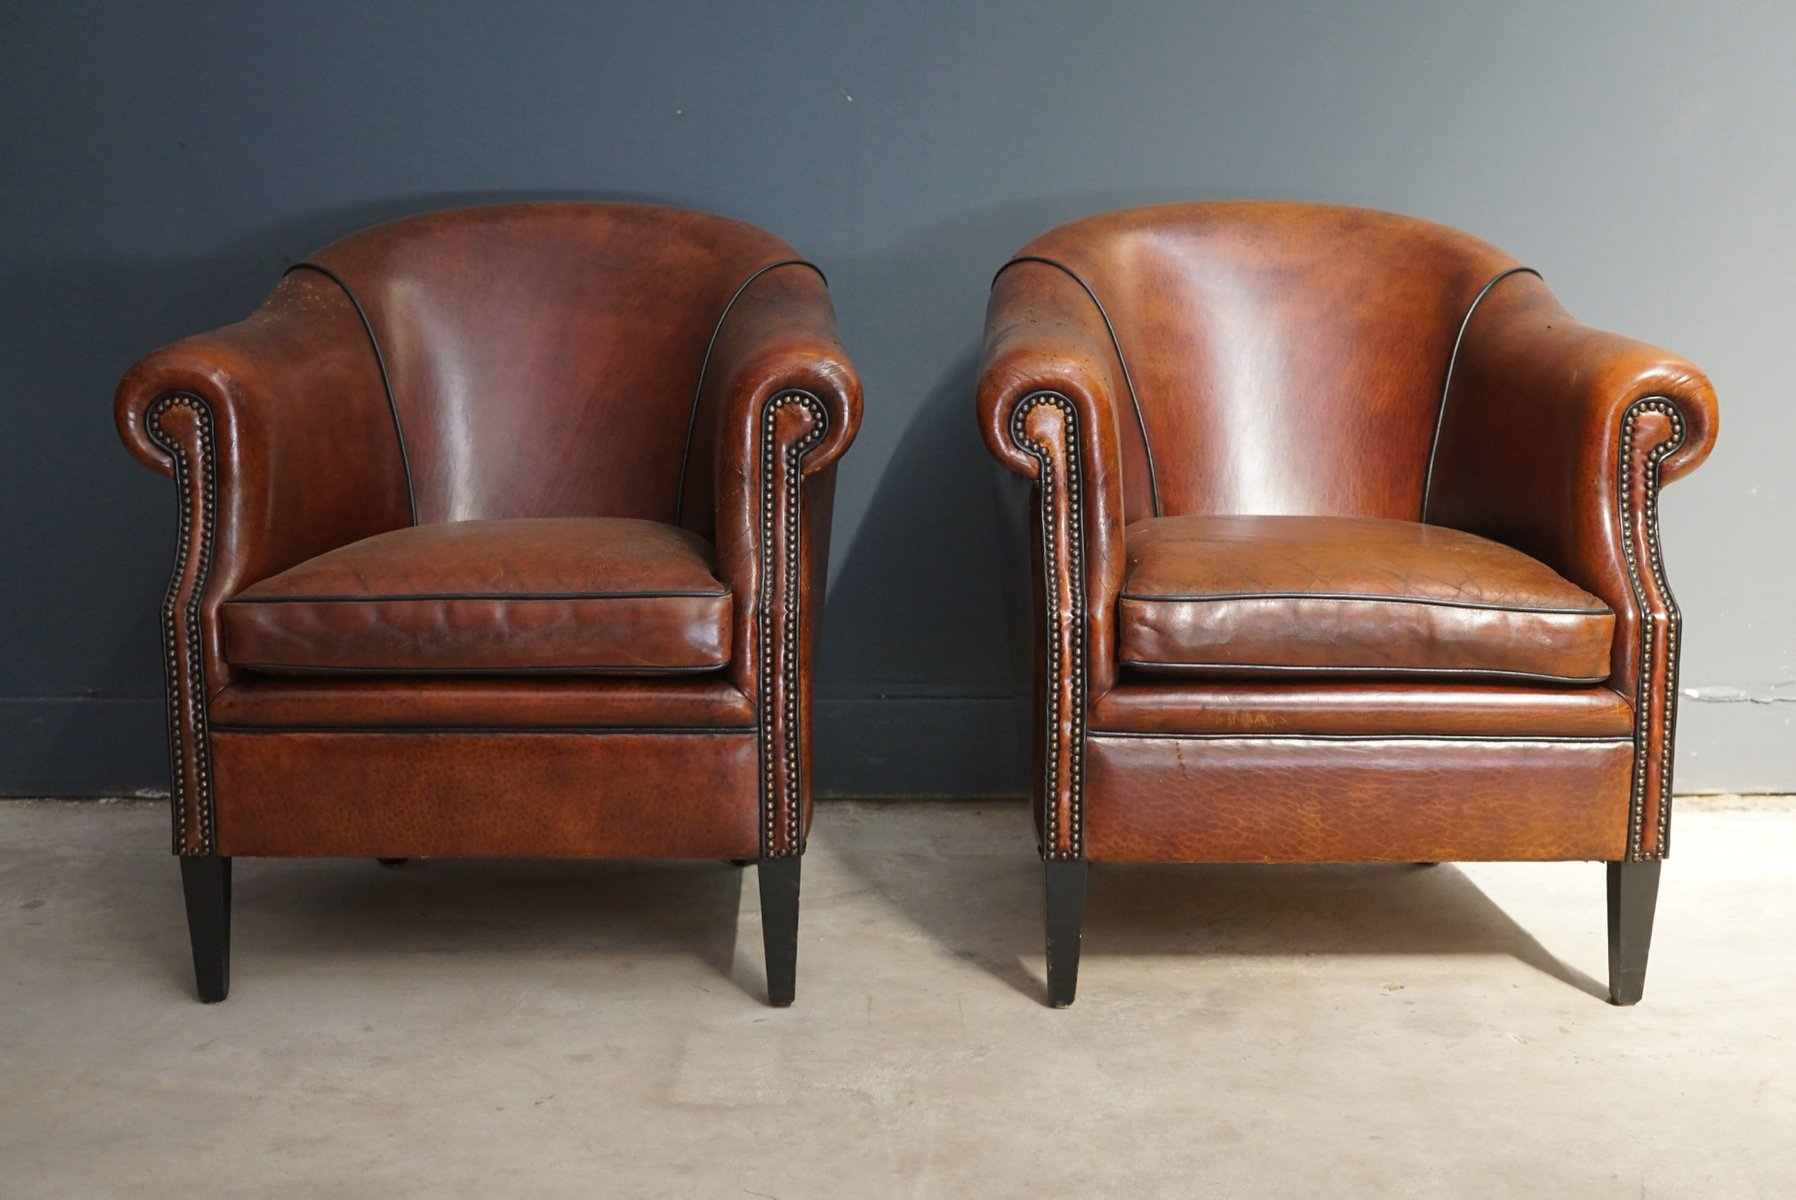 Vintage cognac leather club chairs set of 2 for sale at for Leather kitchen chairs for sale